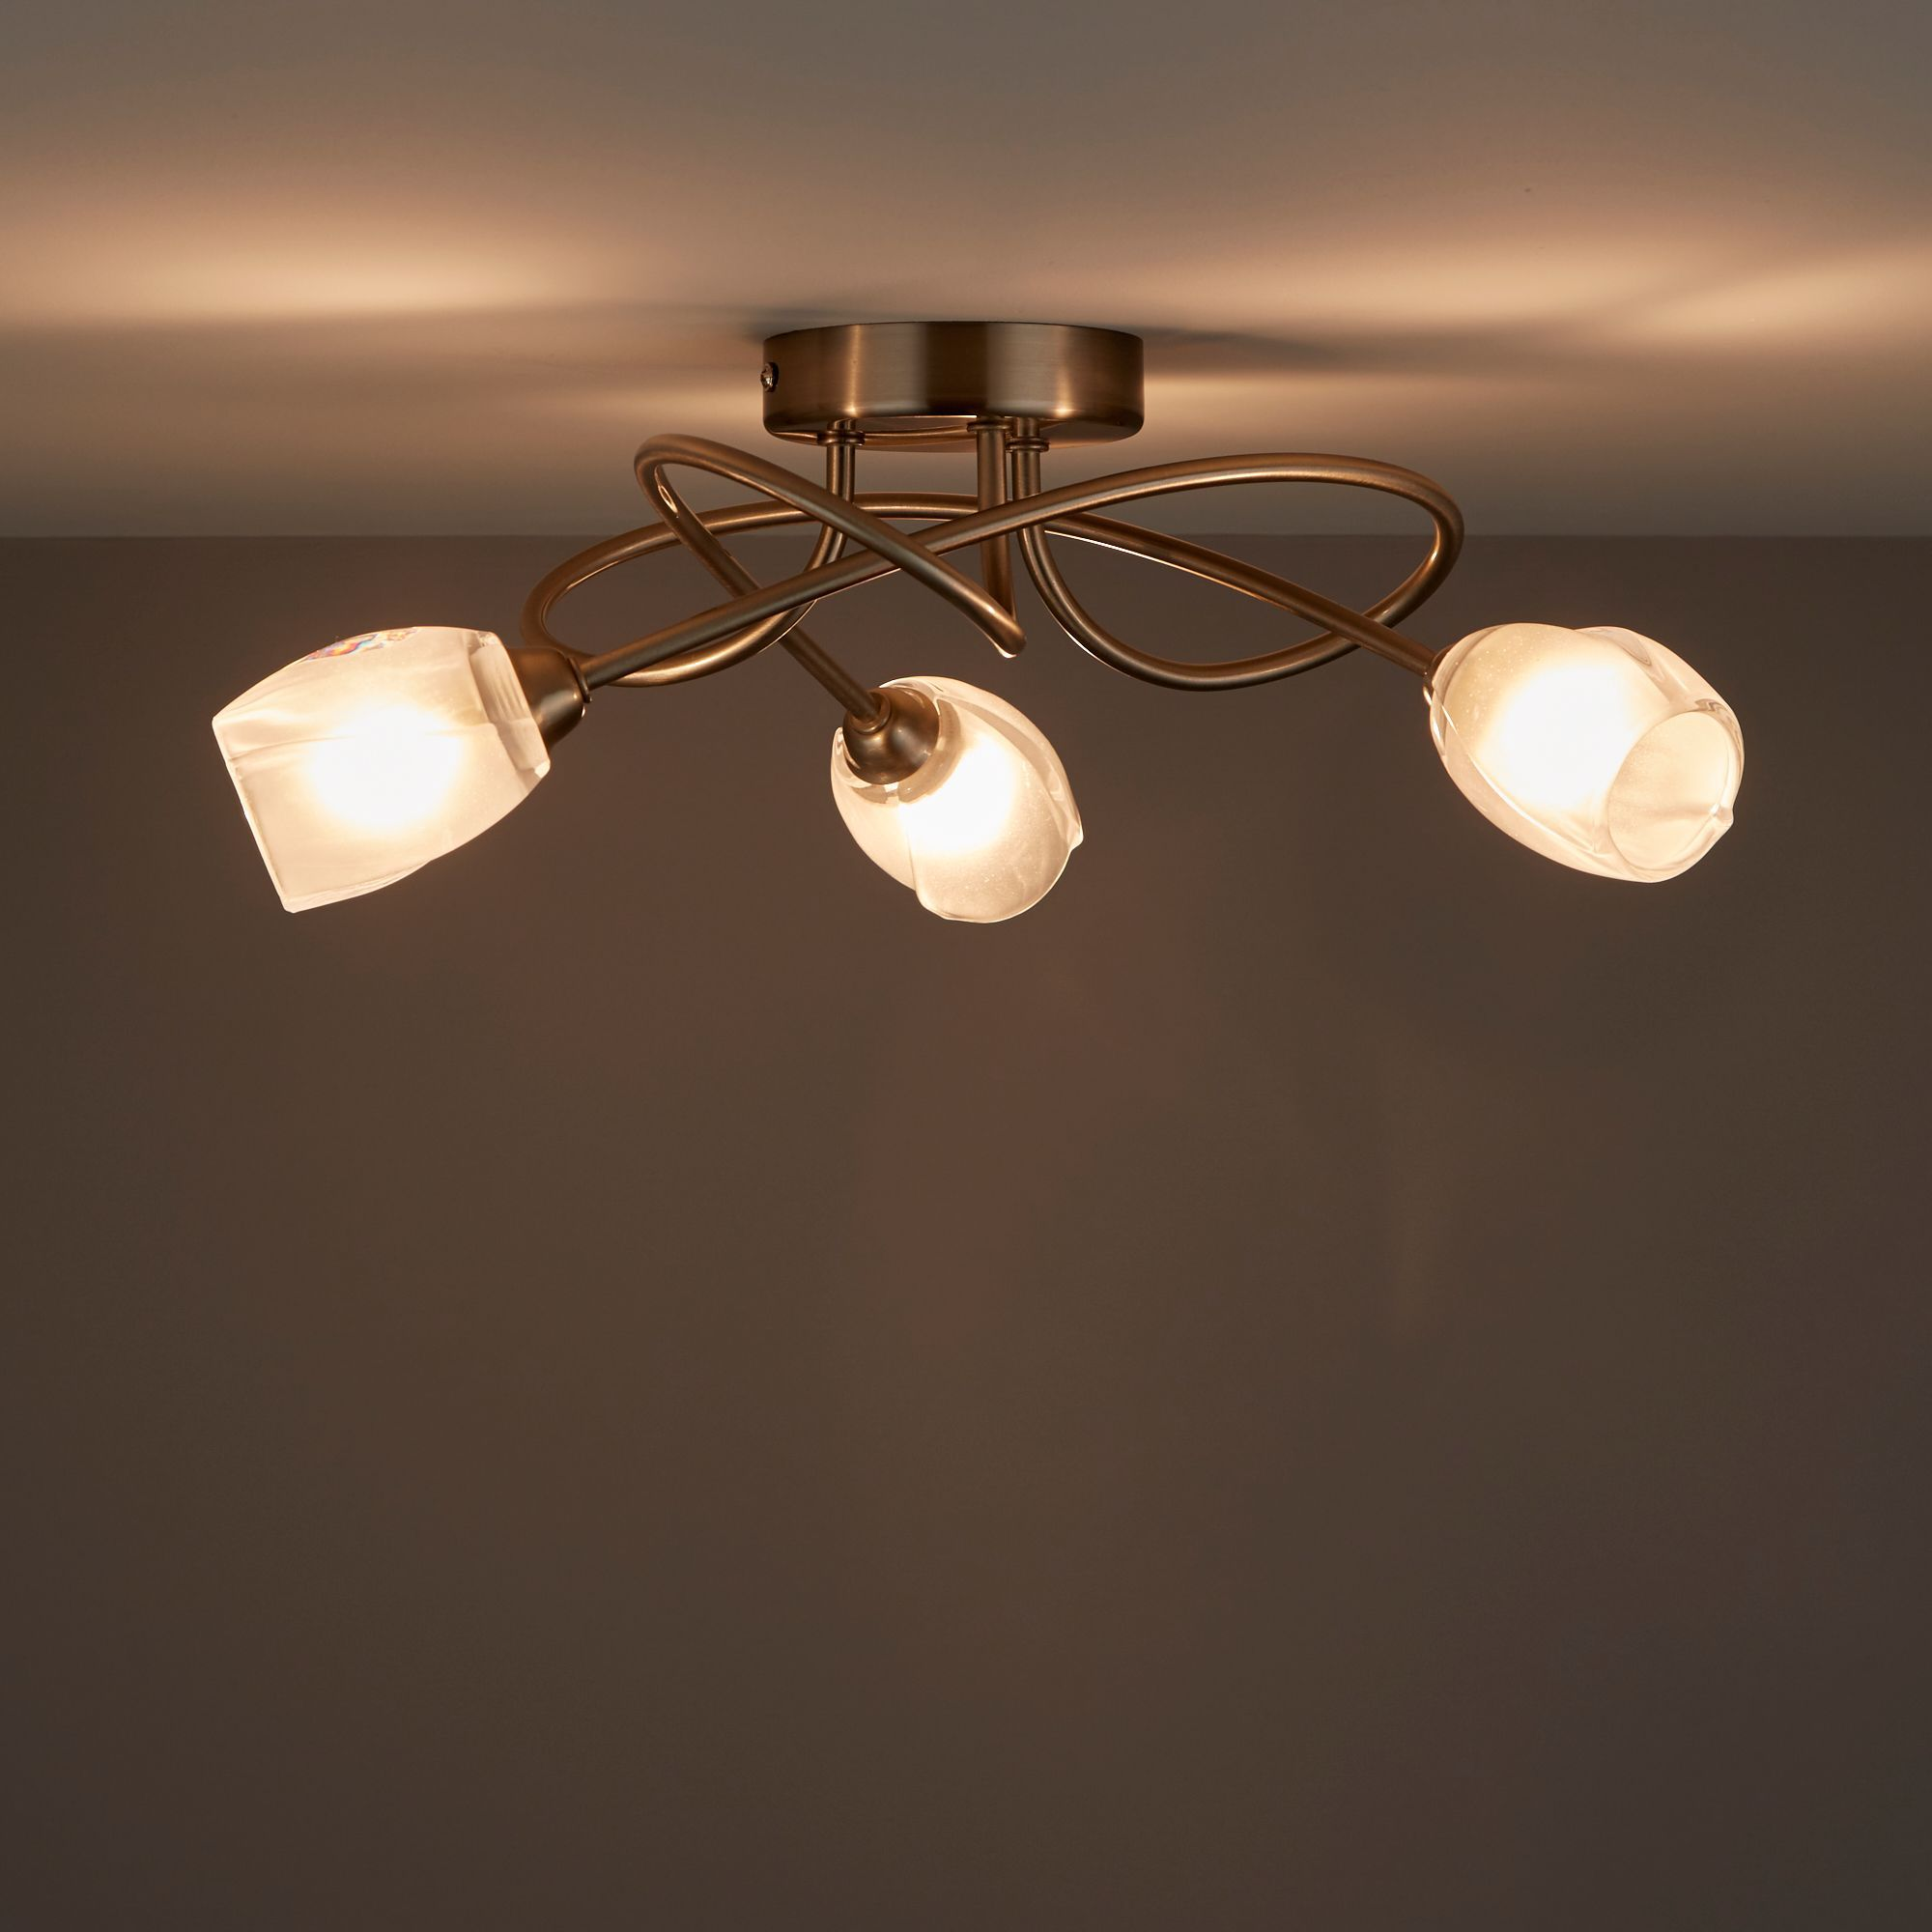 Diy at bq forbes satin chrome 3 lamp ceiling light mozeypictures Gallery